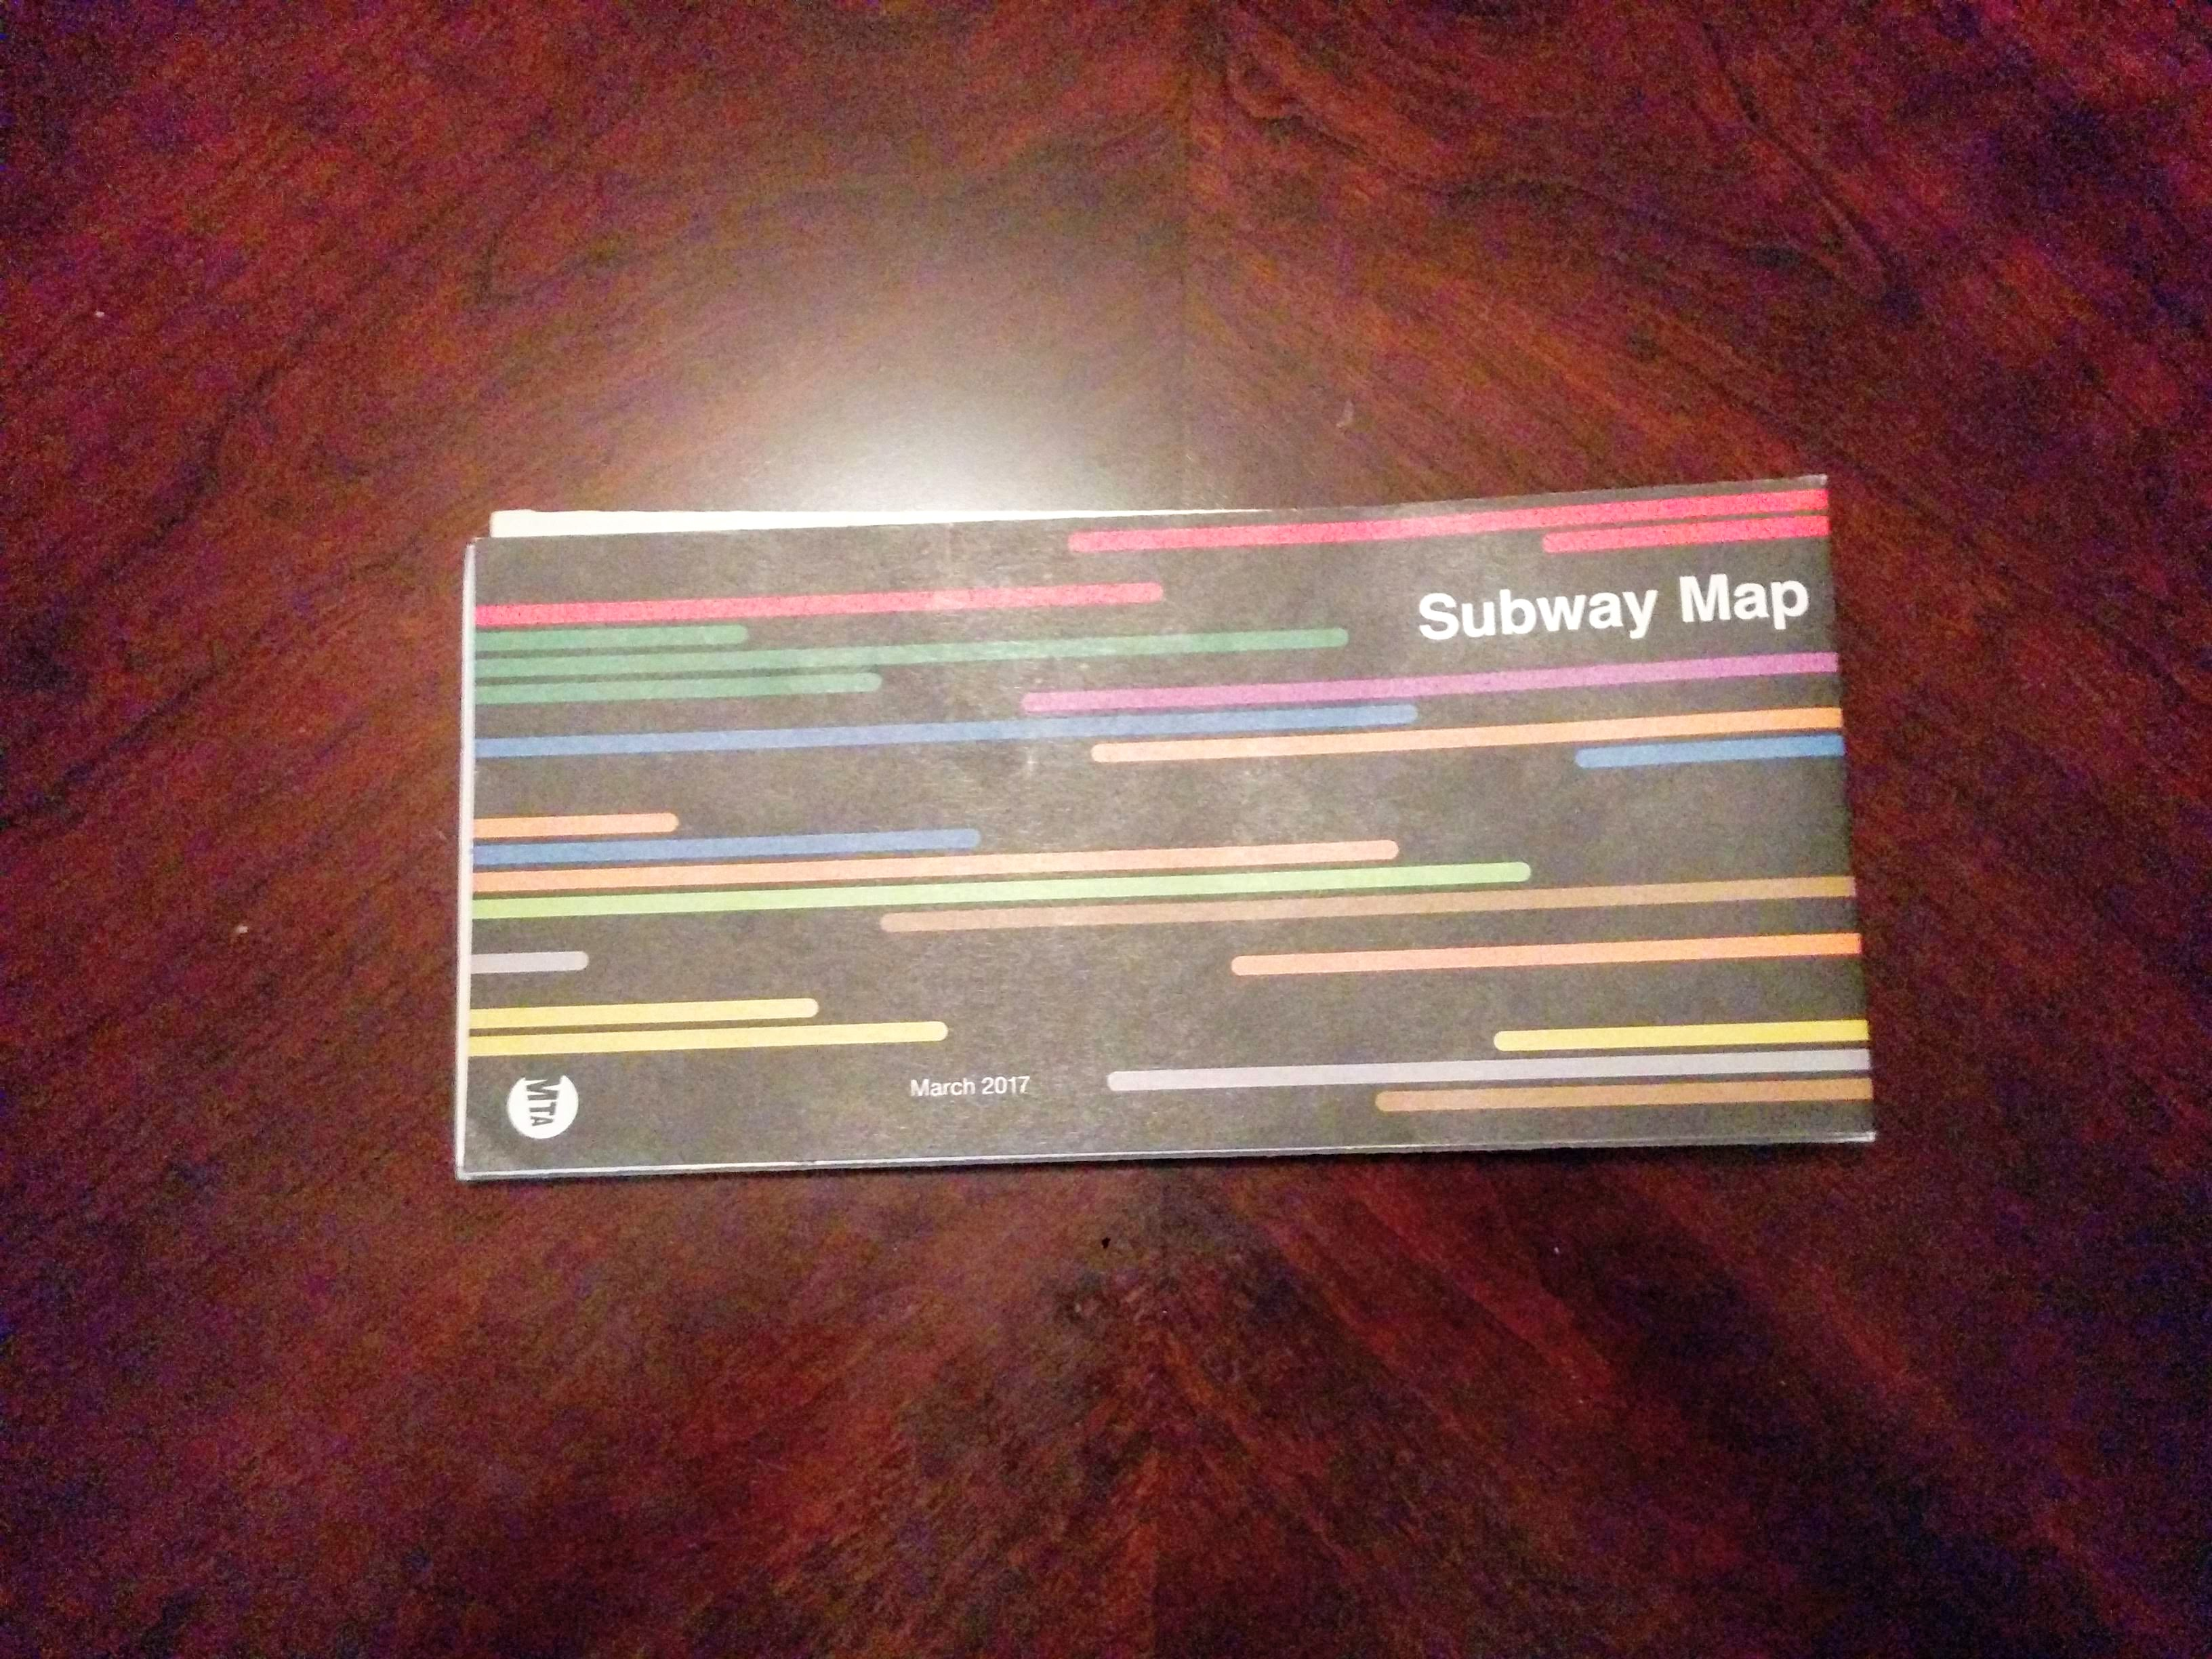 172 Norfolk St On Subway Map.The Transit Museum By Hartride 2012 The Global Transit Guidebook